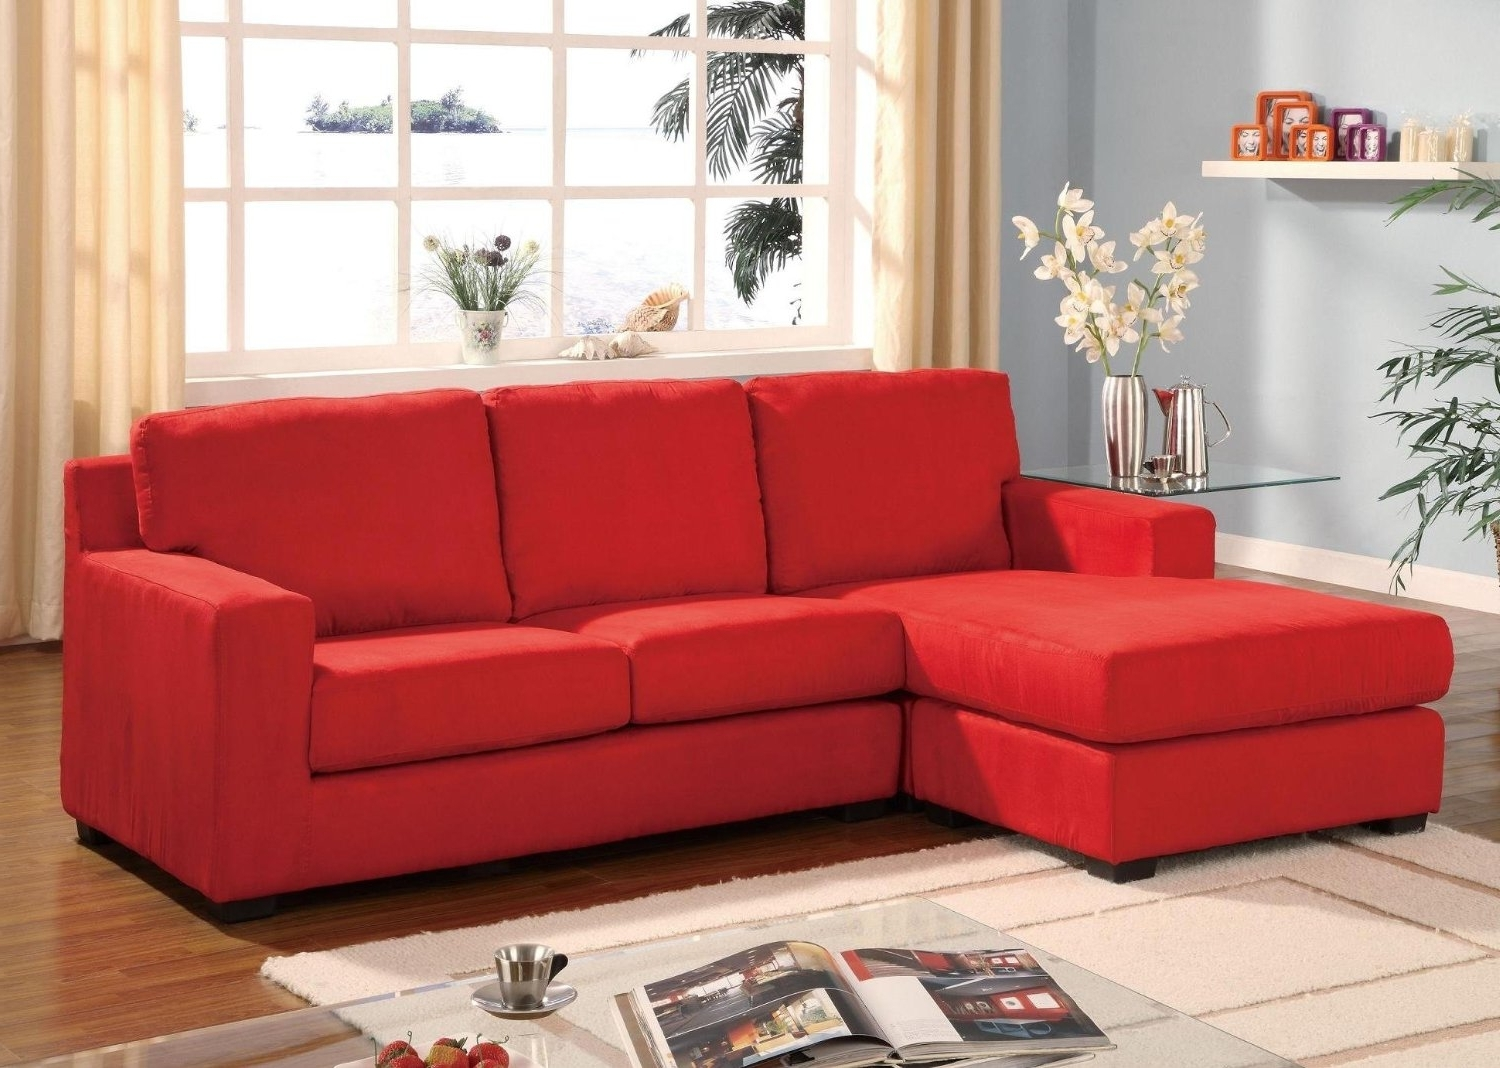 Popular Red Leather Sectionals With Chaise Inside Italian Brown Leather Sectional With Chaise With Sectional Sofas (View 9 of 15)